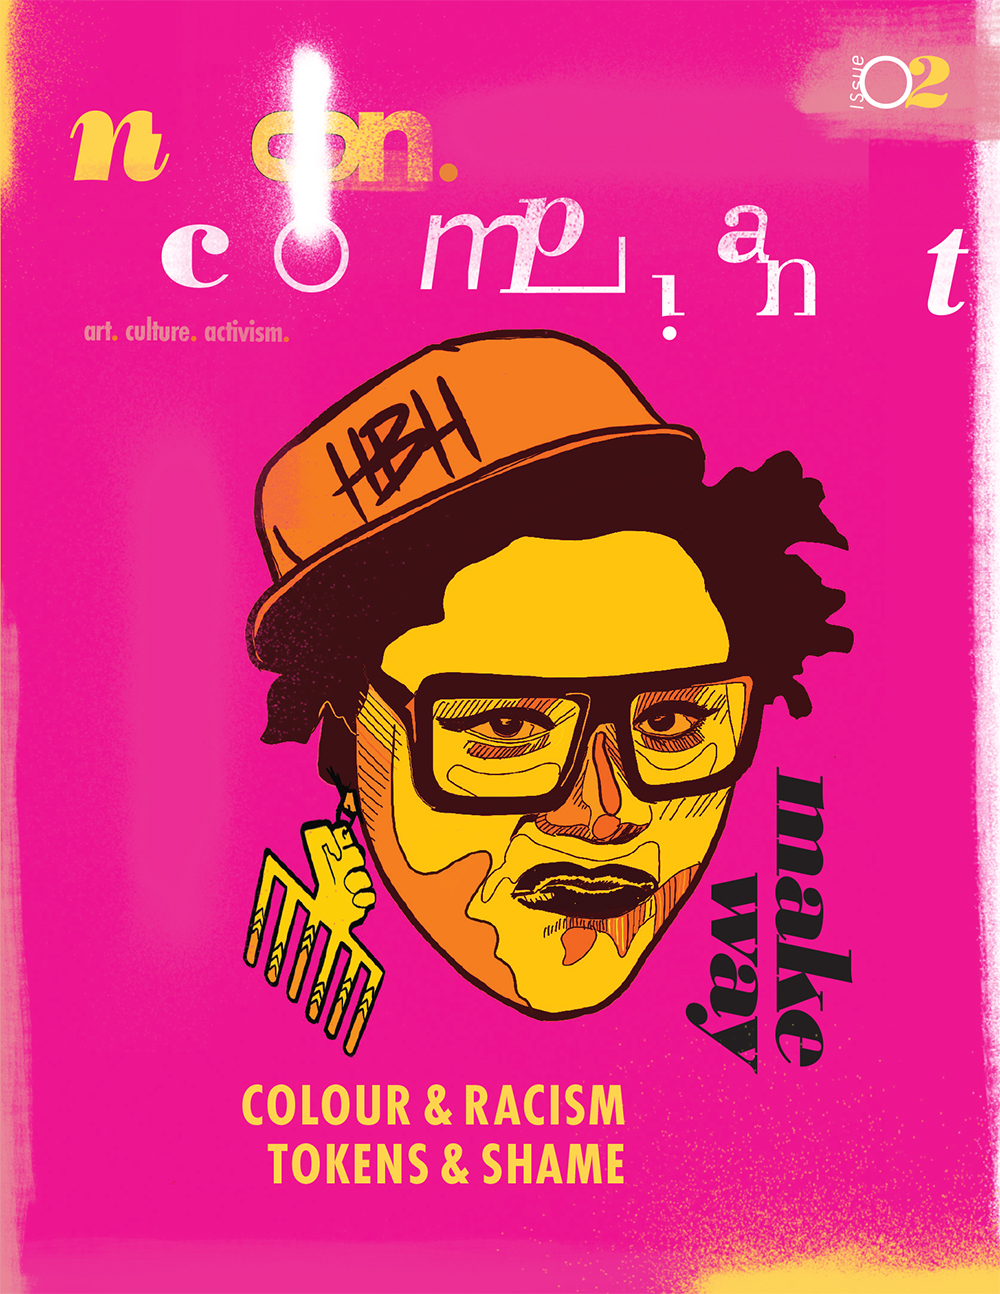 Non-compliant ISSUE02 - colours & racism, tokens & shame